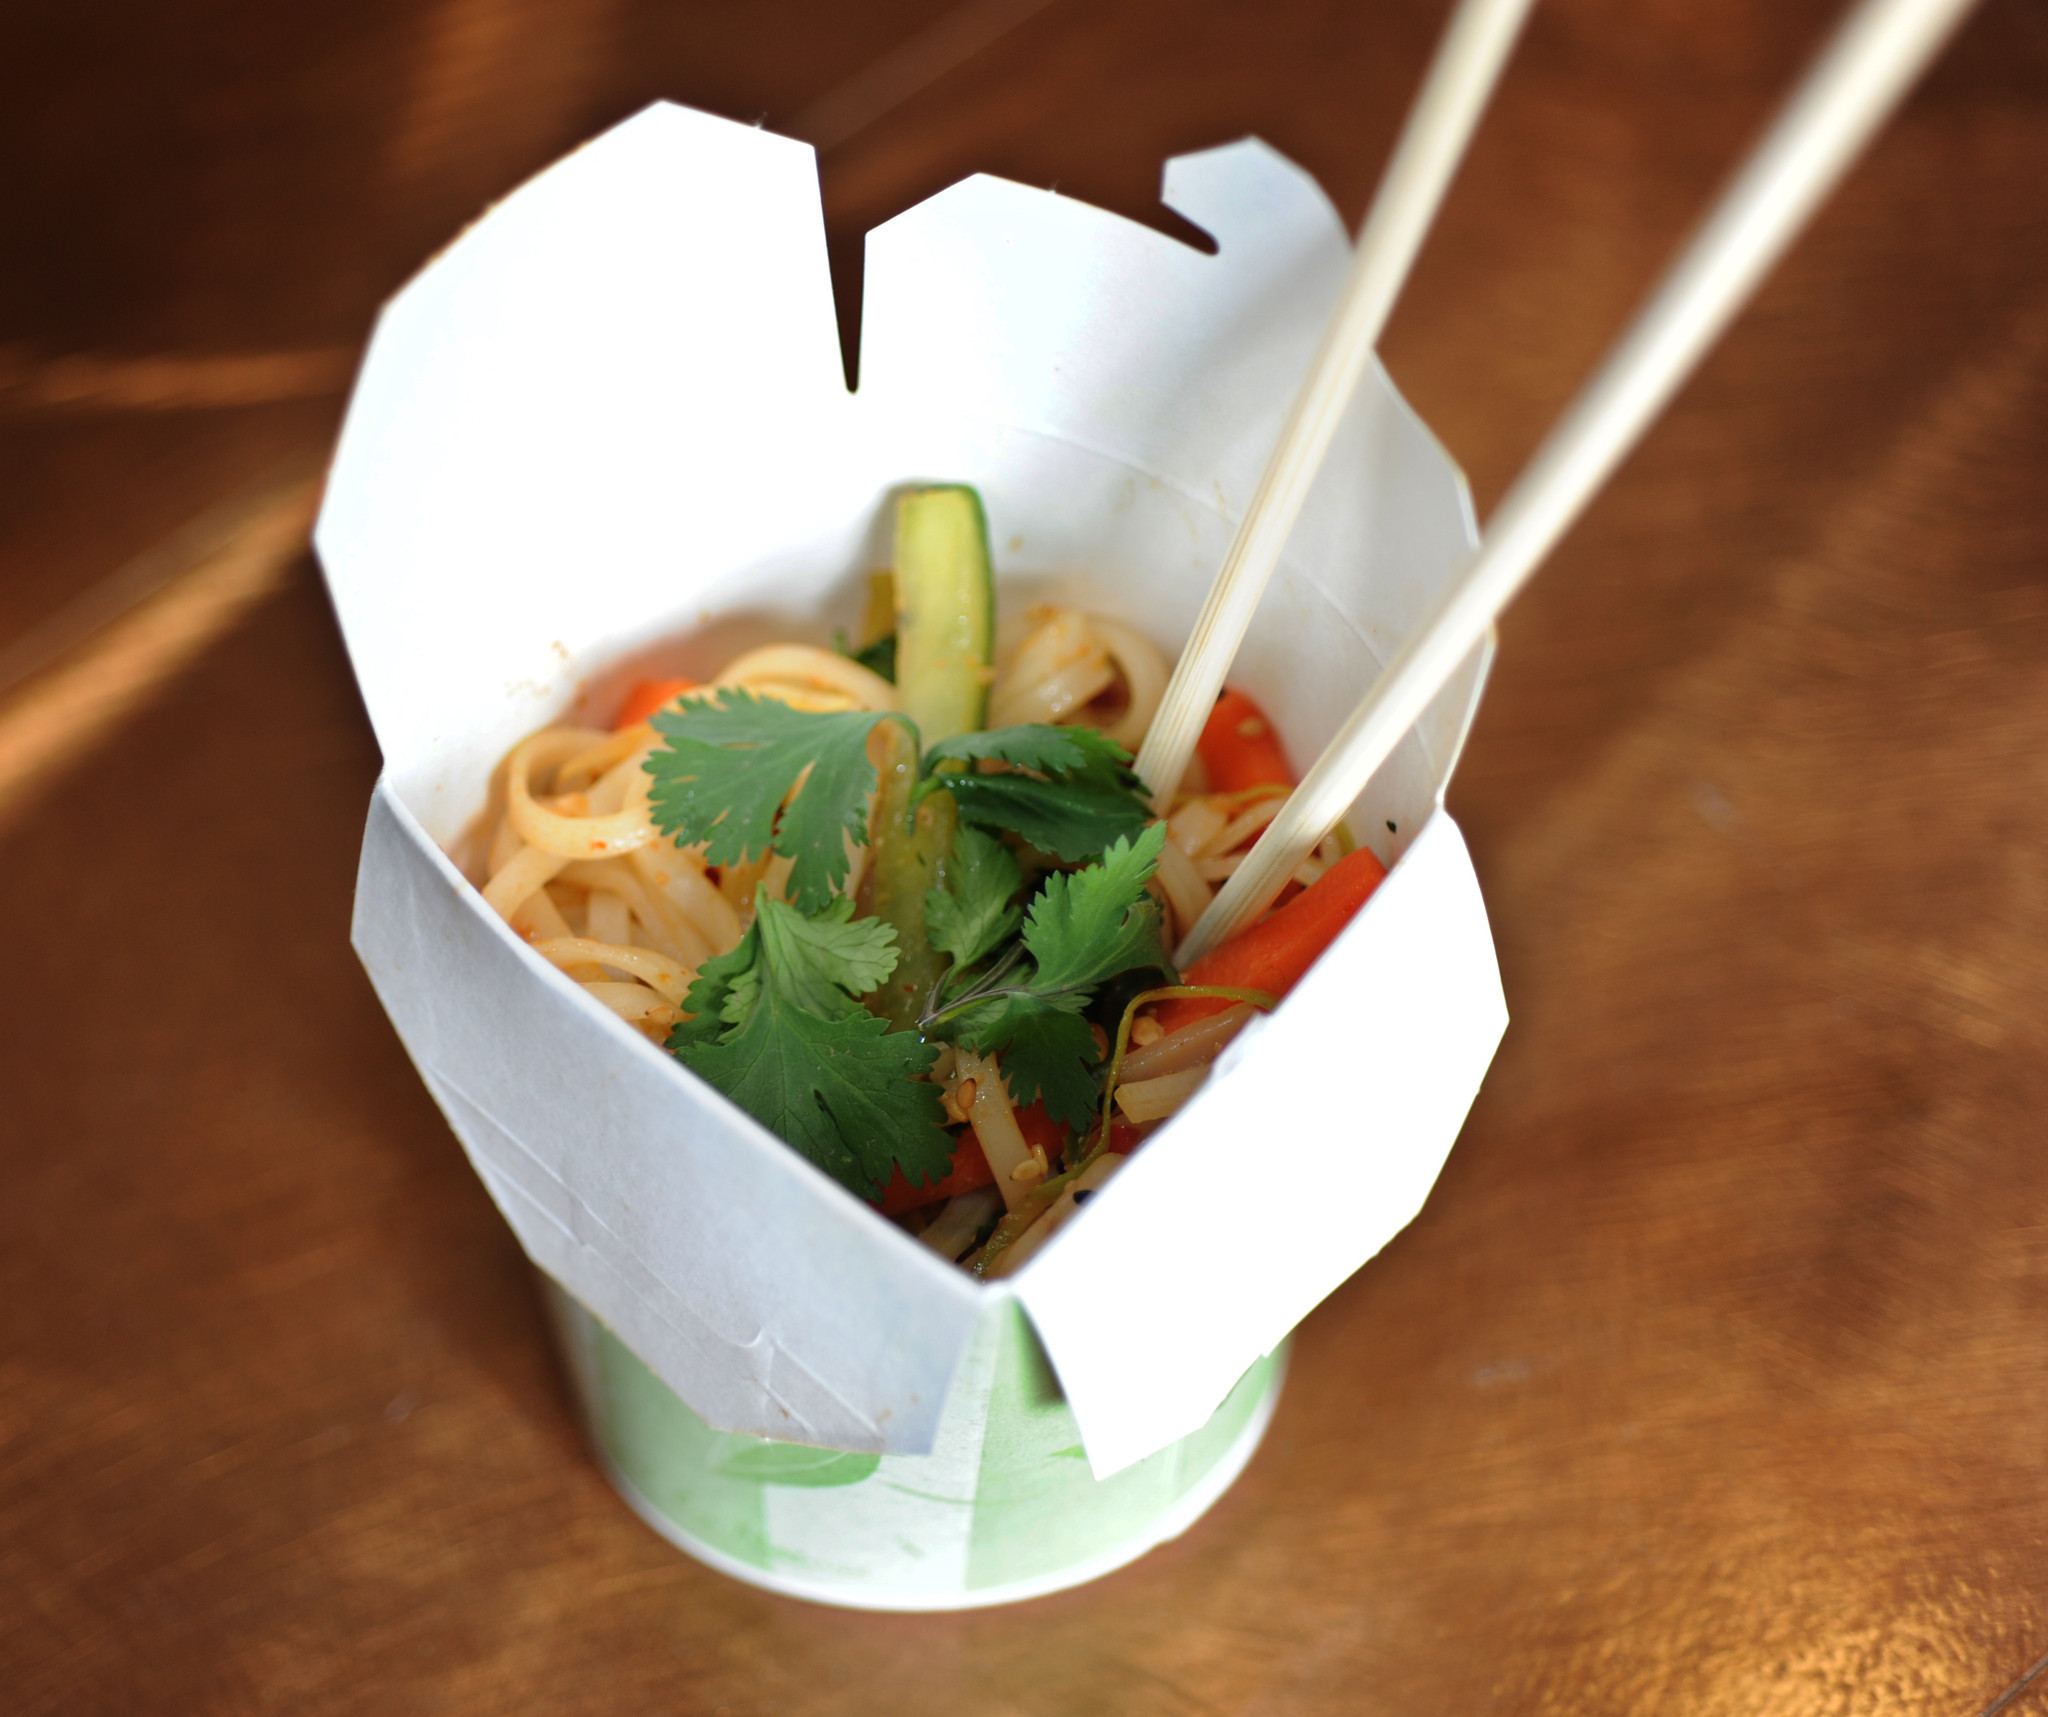 New food items at Oriole Park, and some returning favorites [Pictures] - Pad Thai cold noodle salad